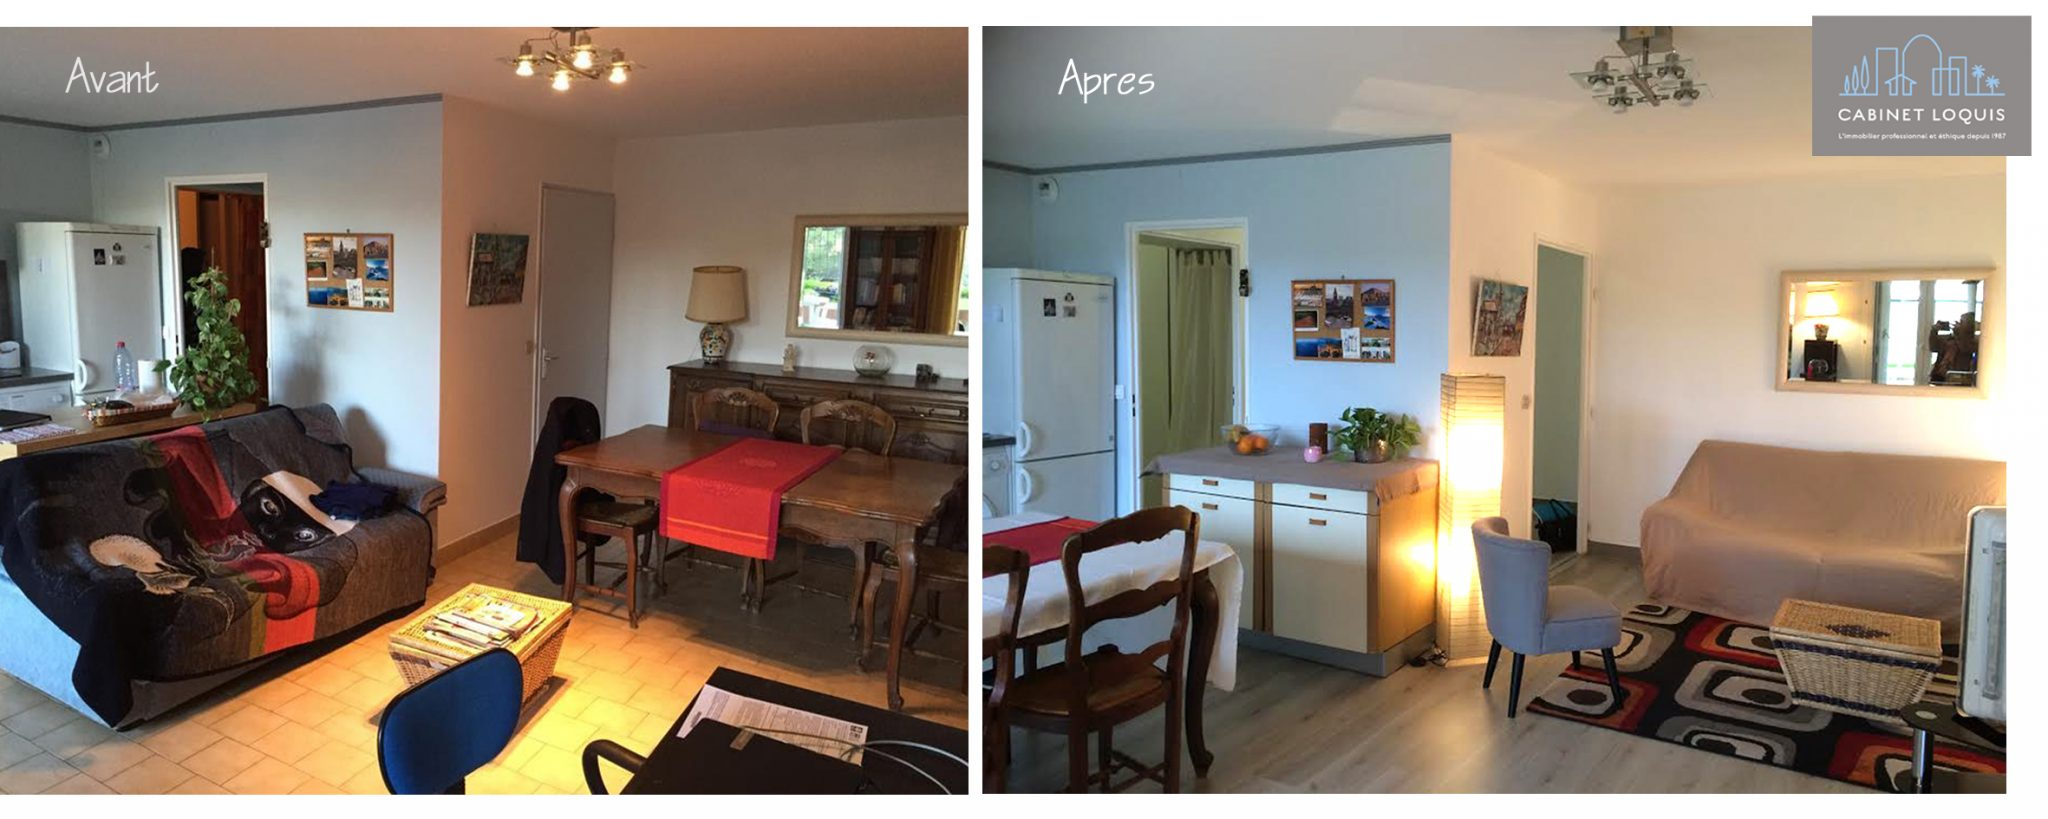 home staging la solution pour valoriser et vendre On home staging avant apres